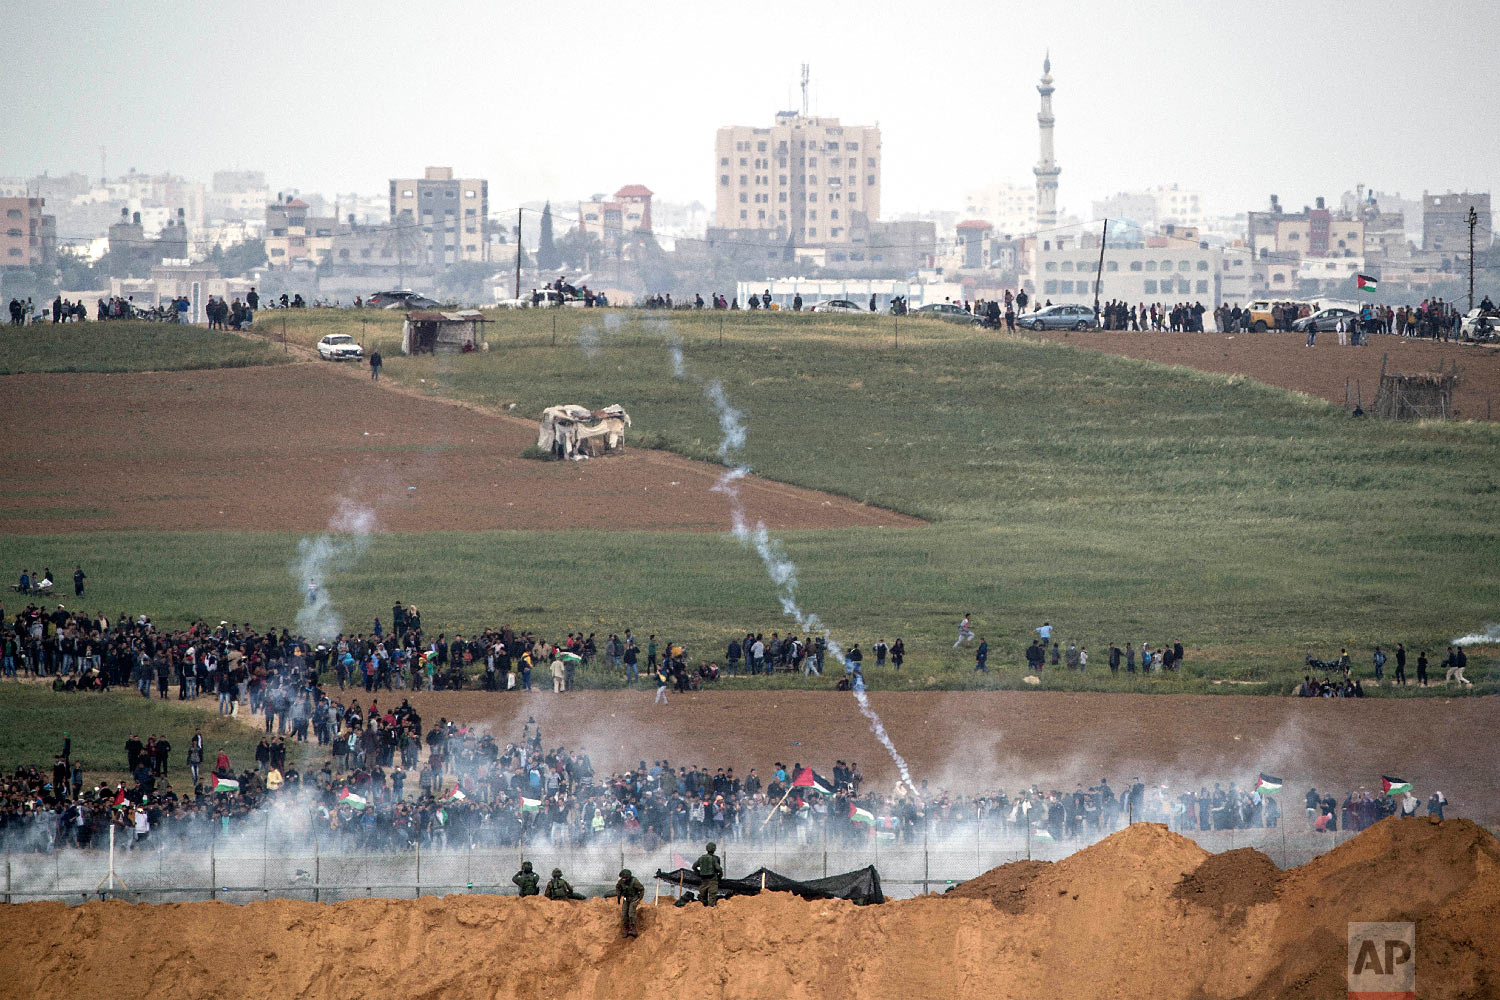 Israeli soldiers shoot tear gas toward Palestinian protesters as they gather on the Israel Gaza border, Friday, March 30, 2018. (AP Photo/Tsafrir Abayov)